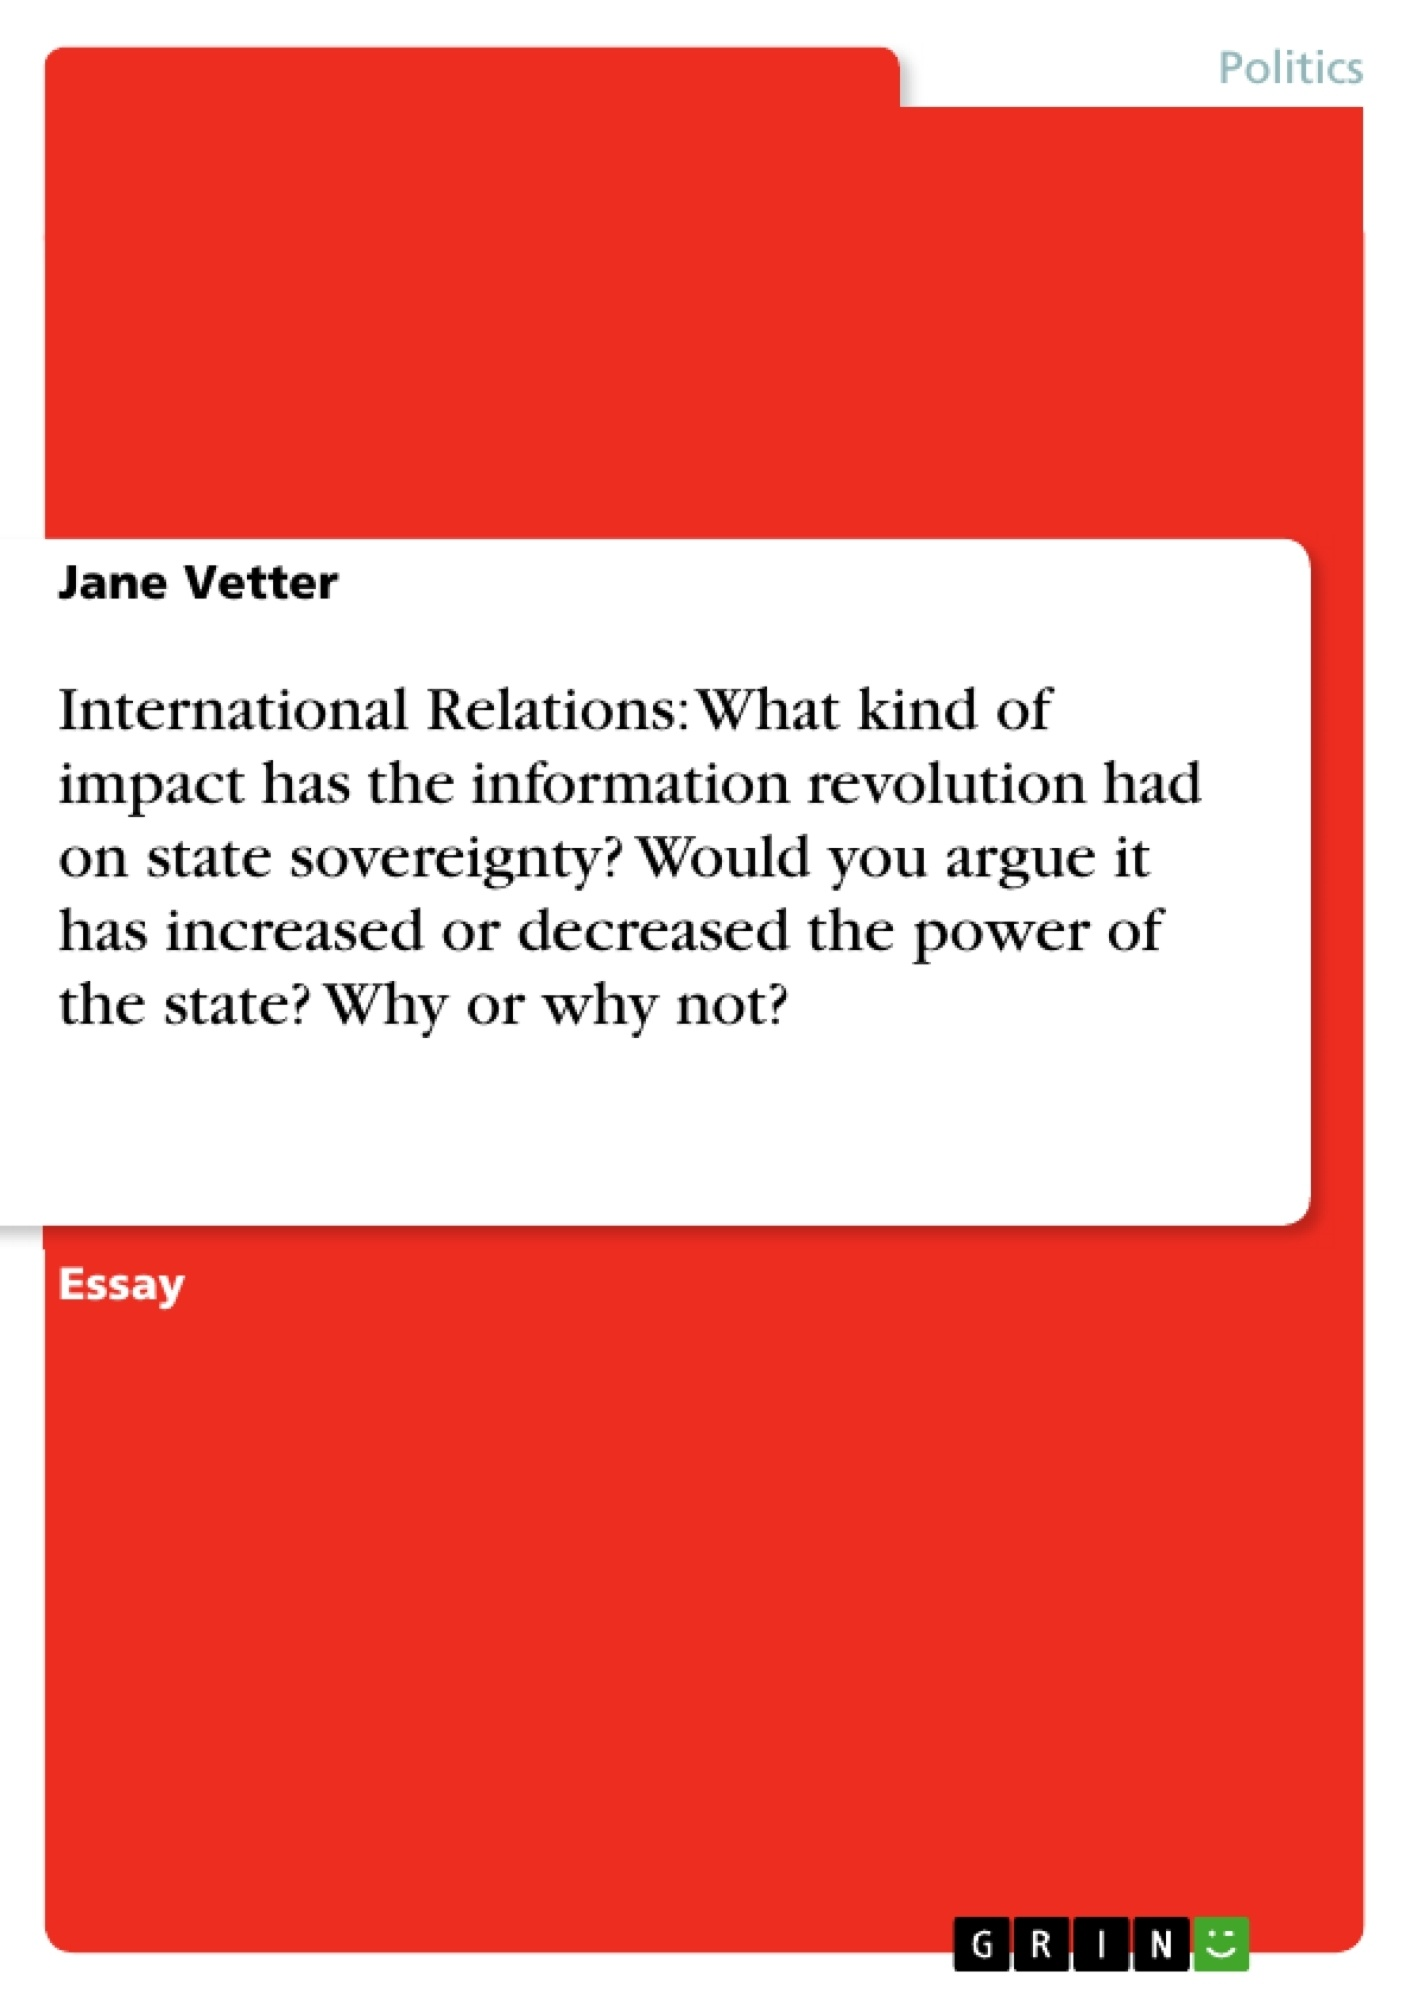 Title: International Relations: What kind of impact has the information revolution had on state sovereignty? Would you argue it has increased or decreased the power of the state? Why or why not?